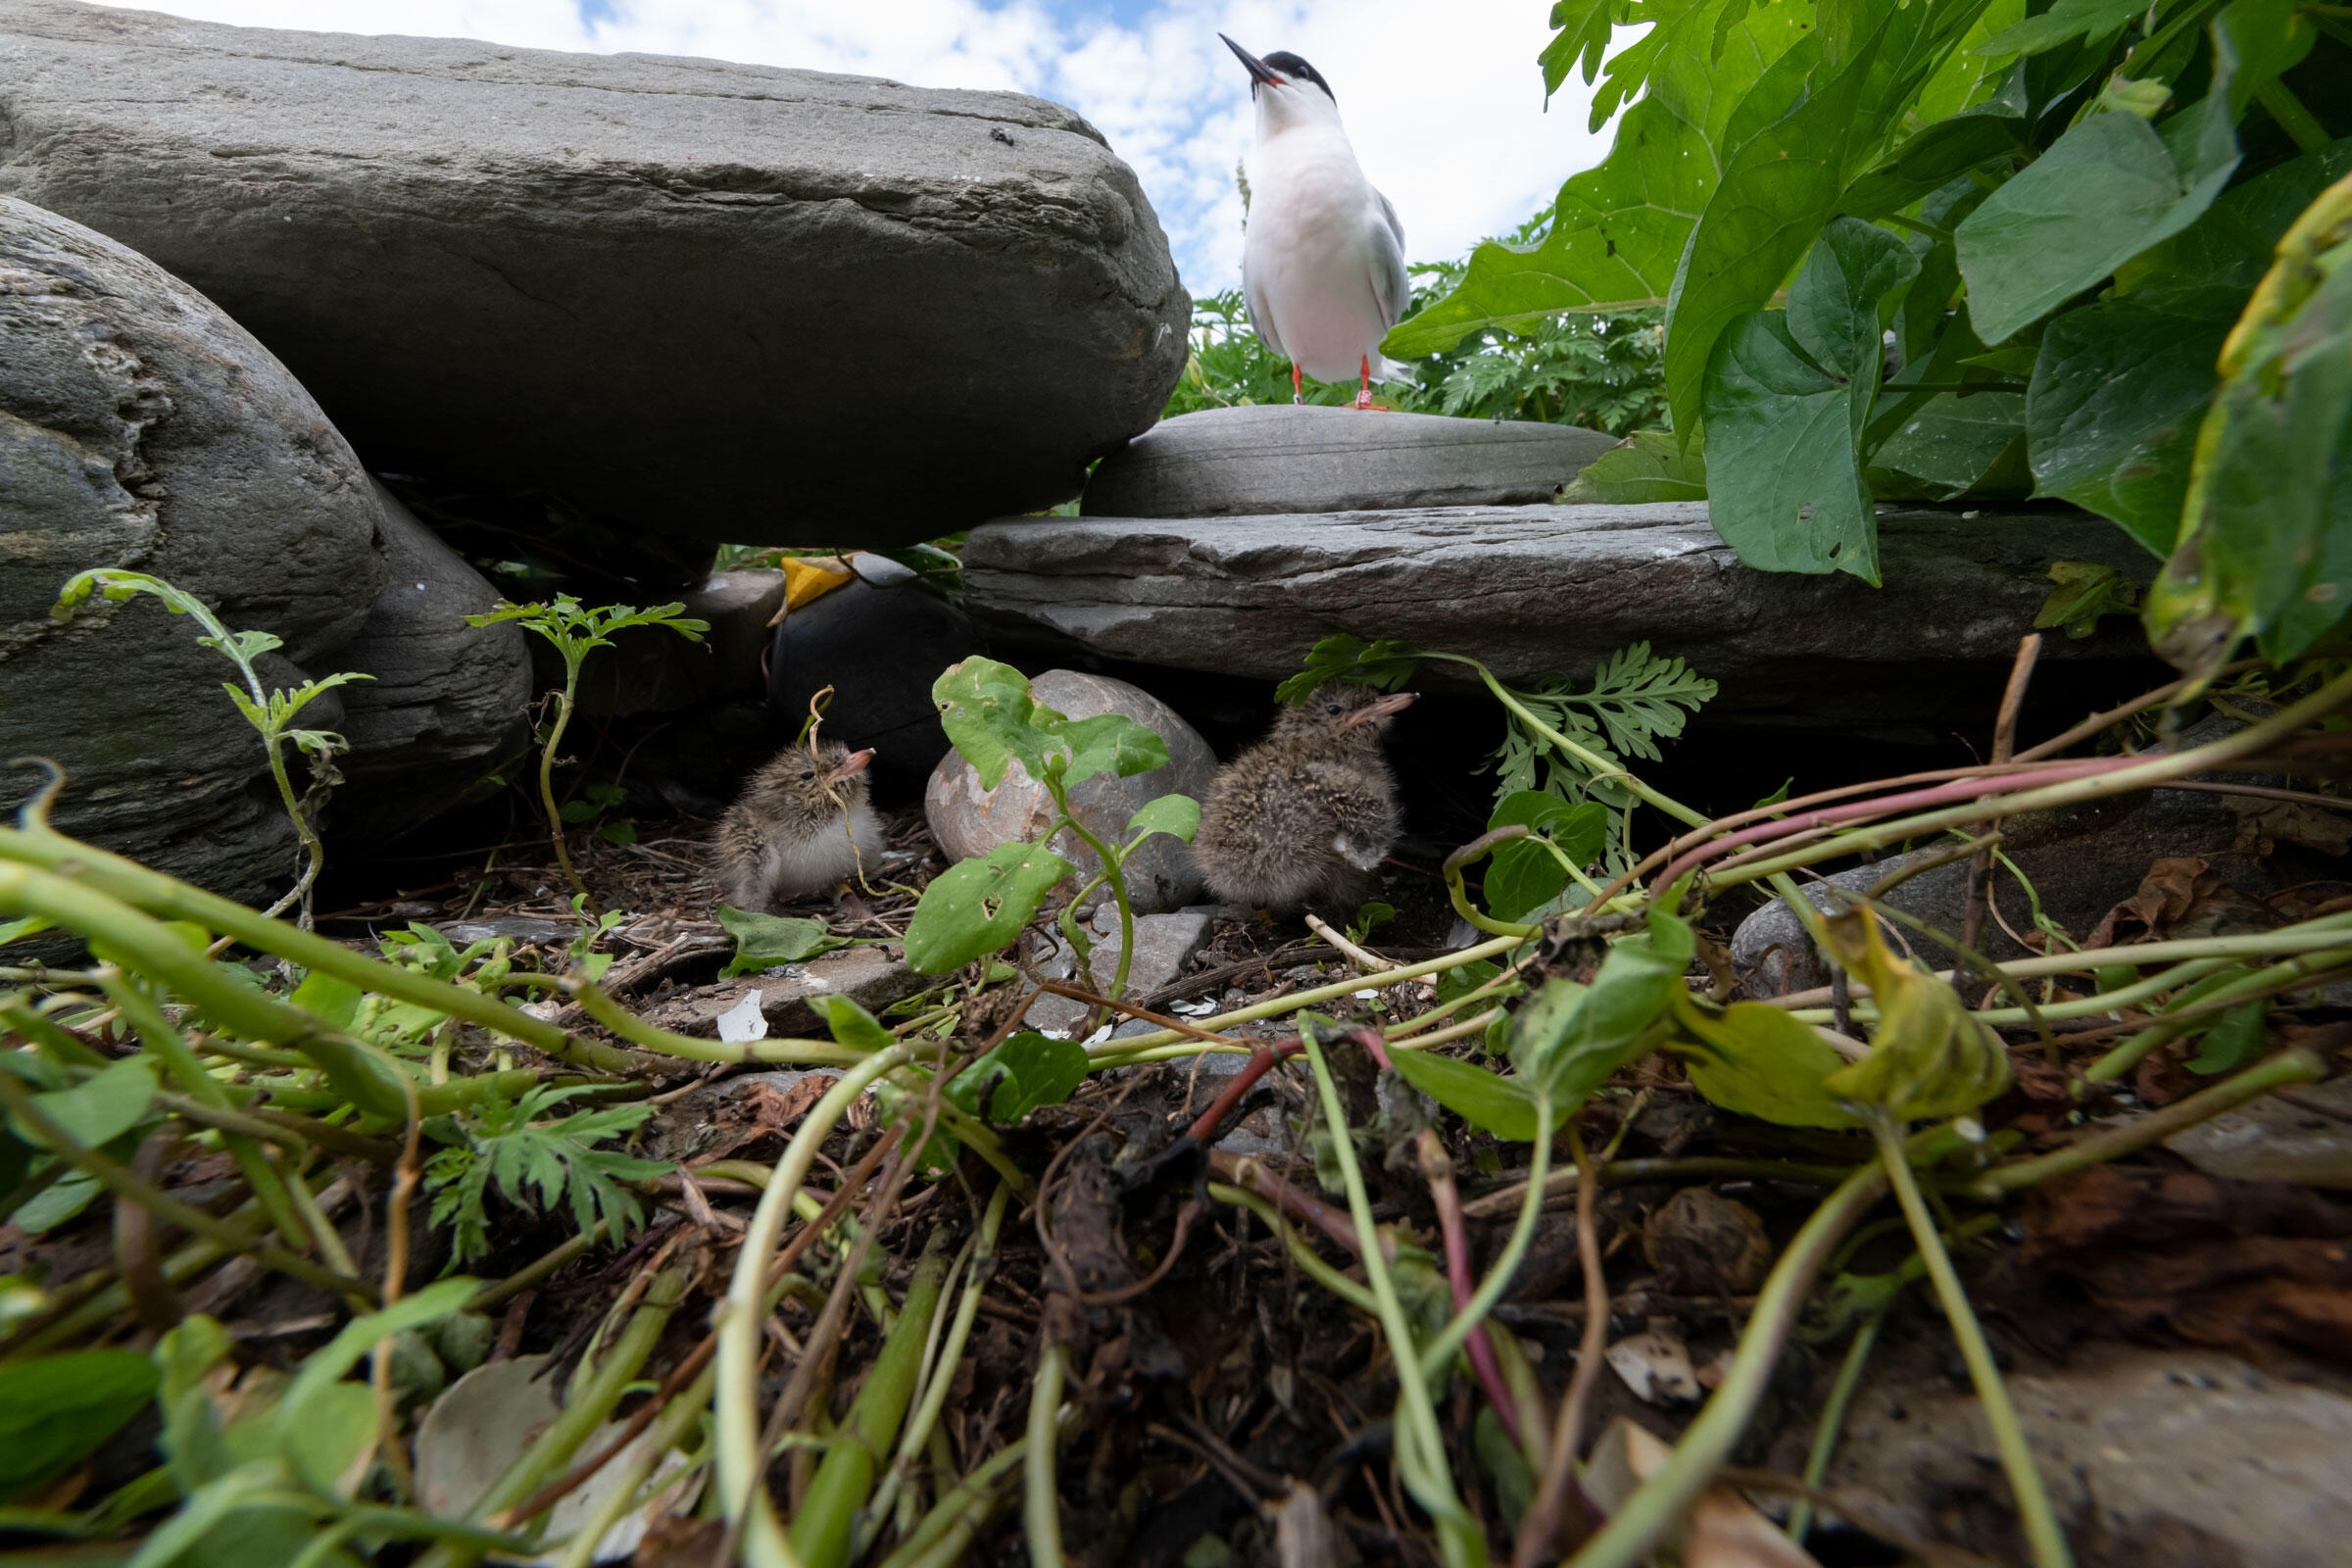 A Roseate Tern adult and chicks. Chris Linder